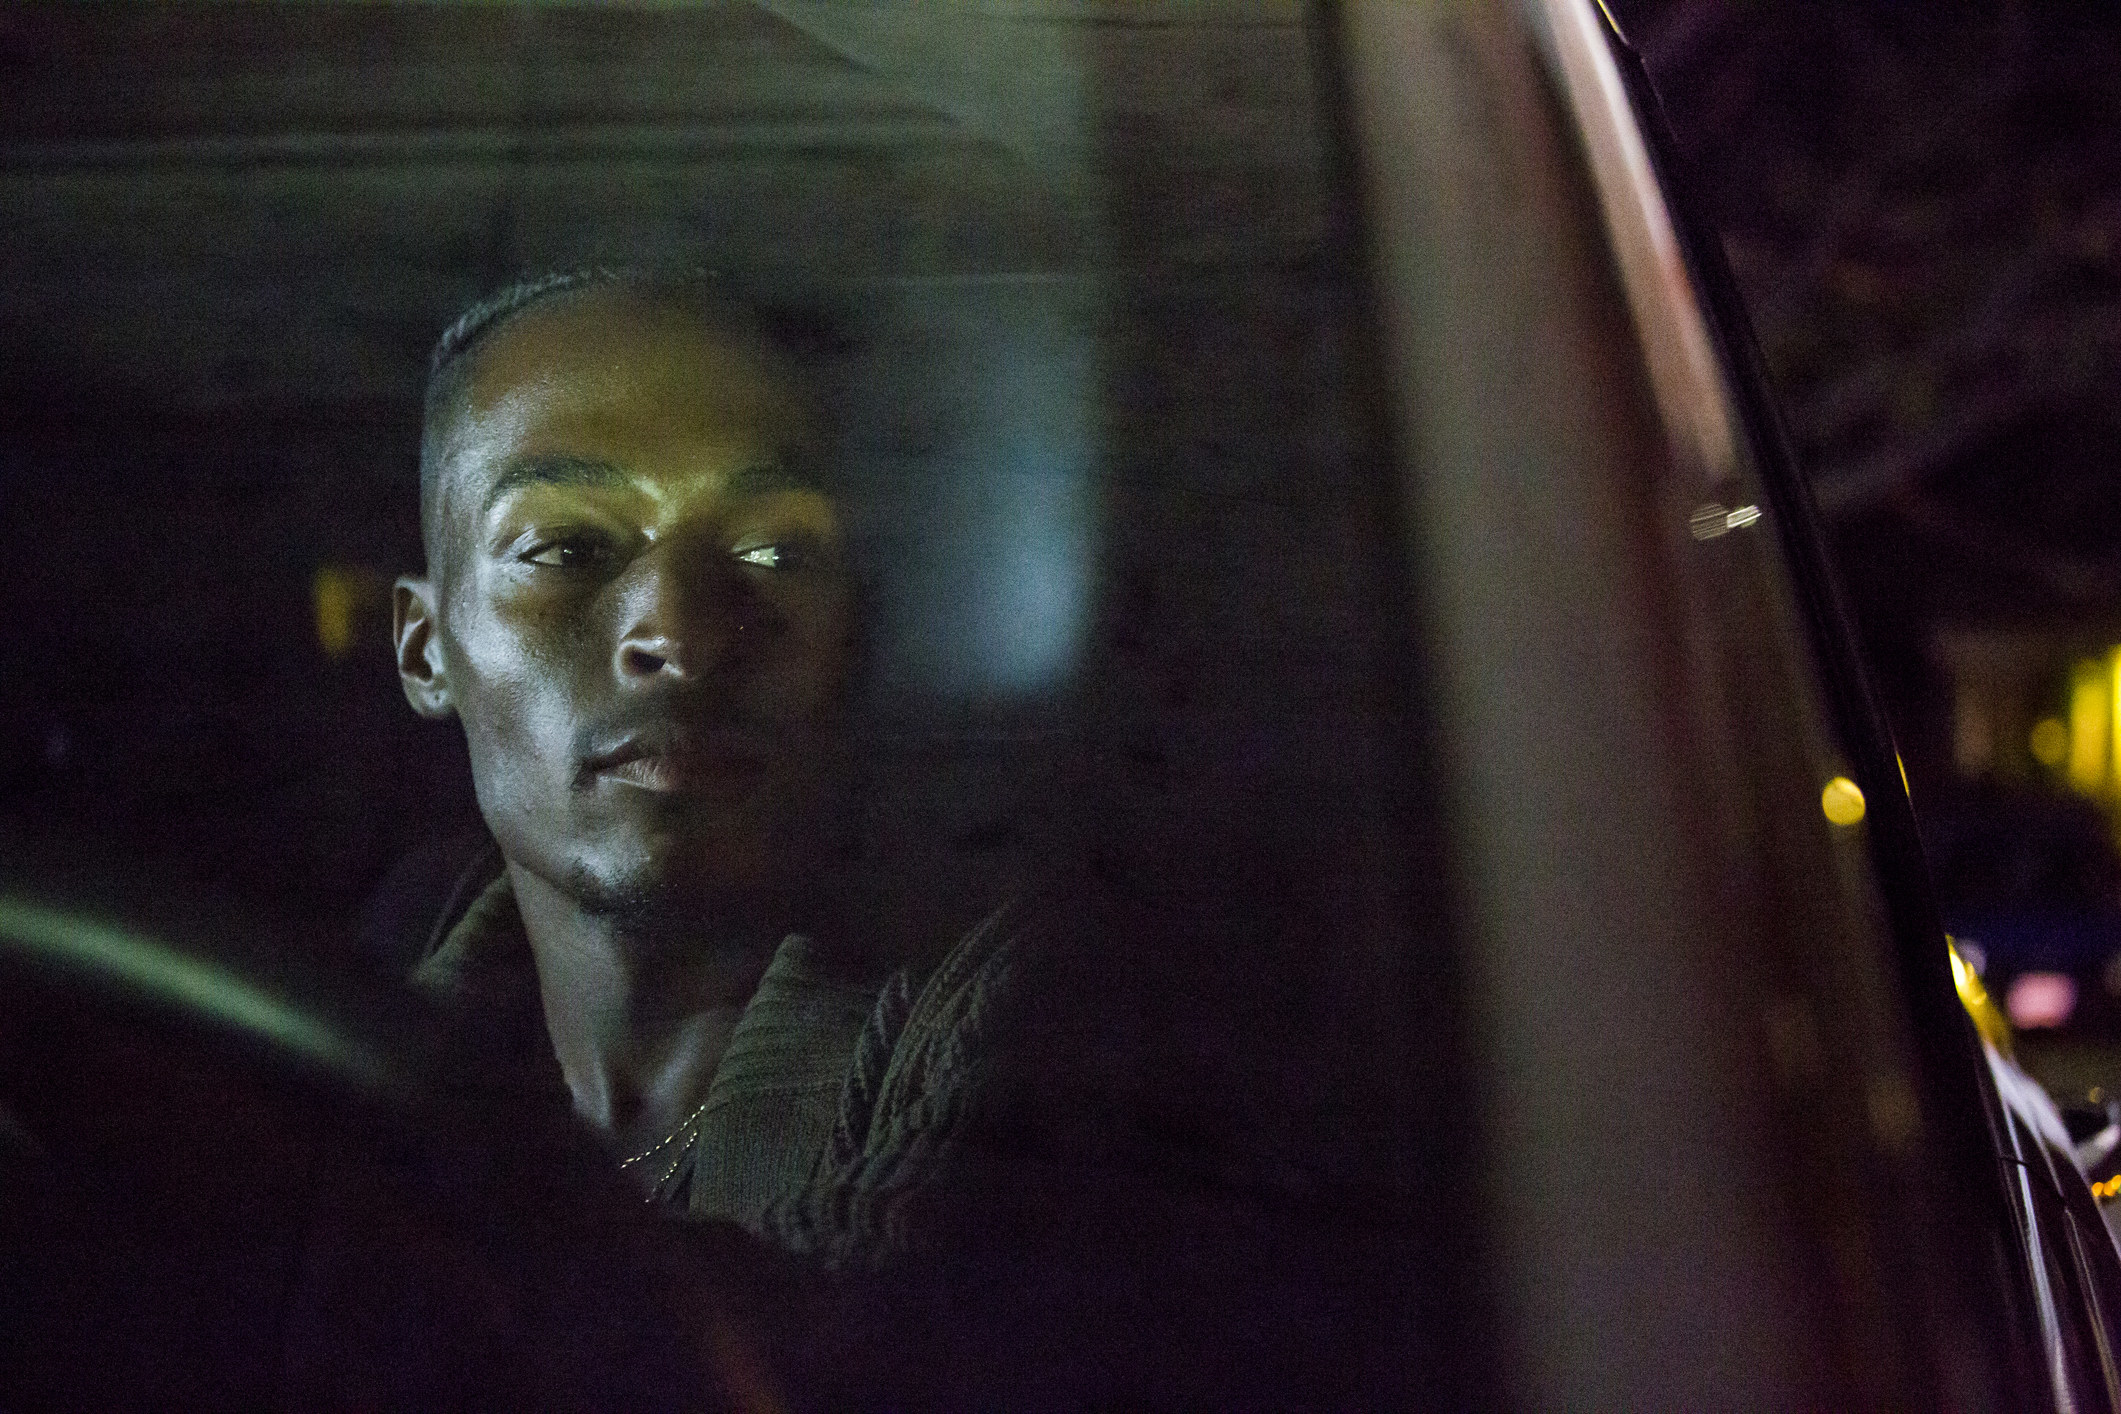 A man looks out the driver's side window of a car at night